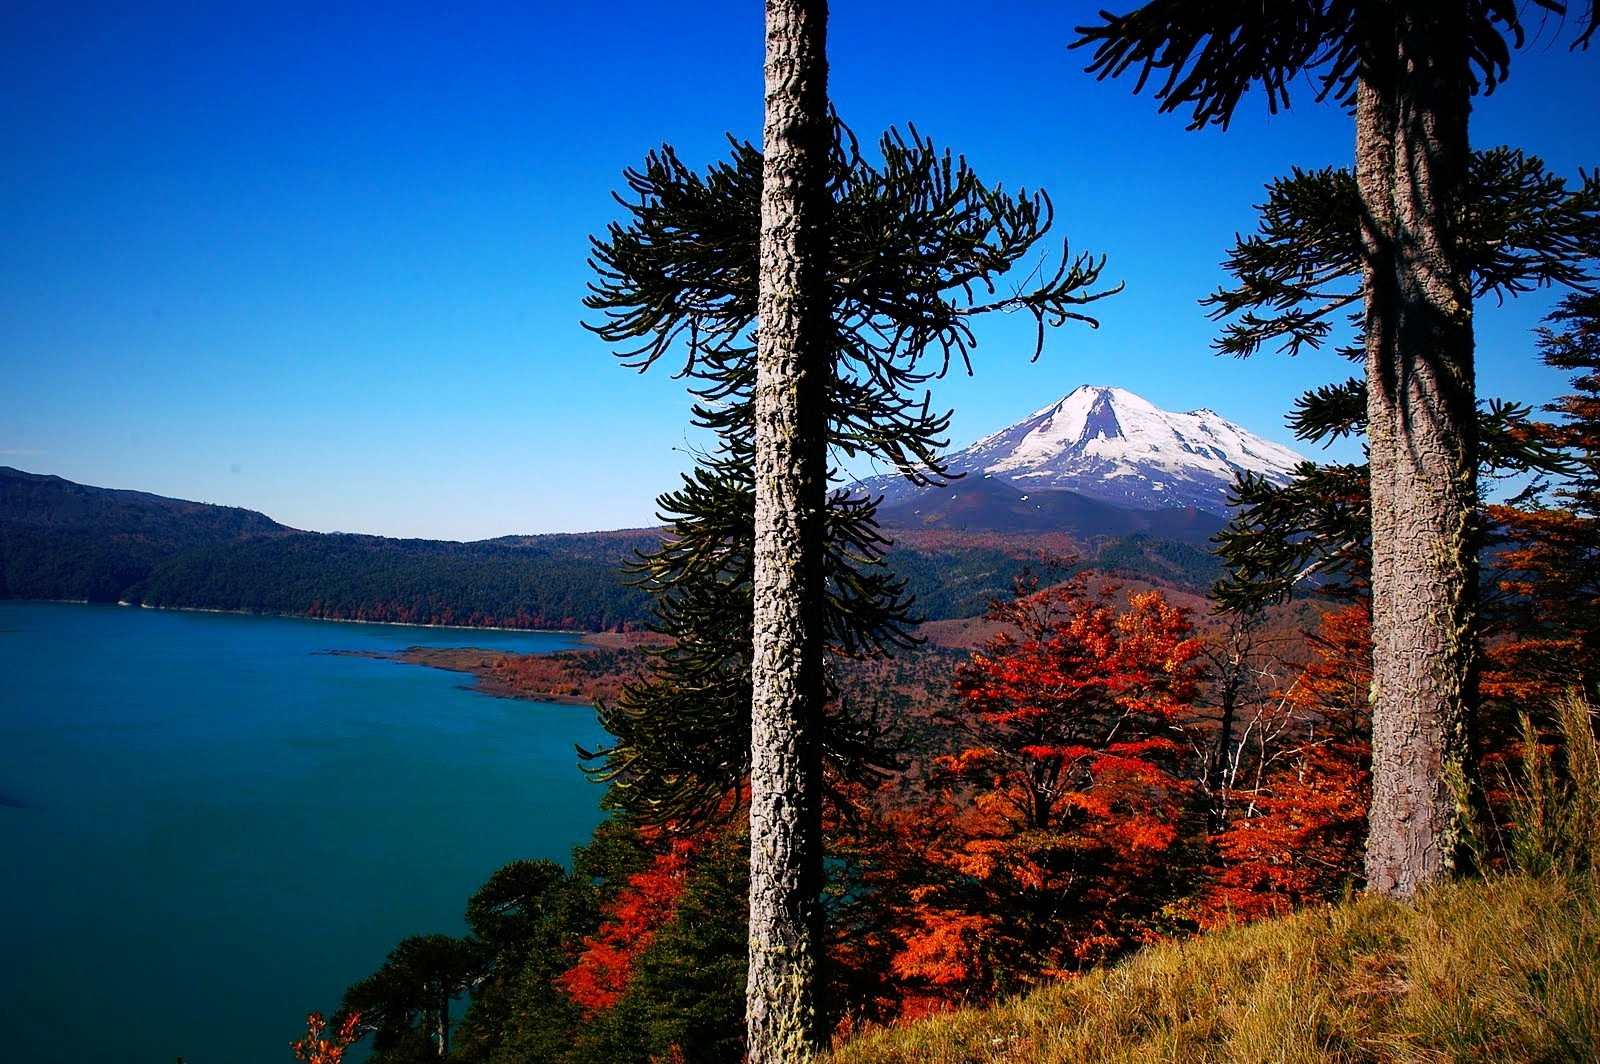 The Fall Movie Wallpaper Volcano Chile Forest Lake Fall Snowy Peak Trees